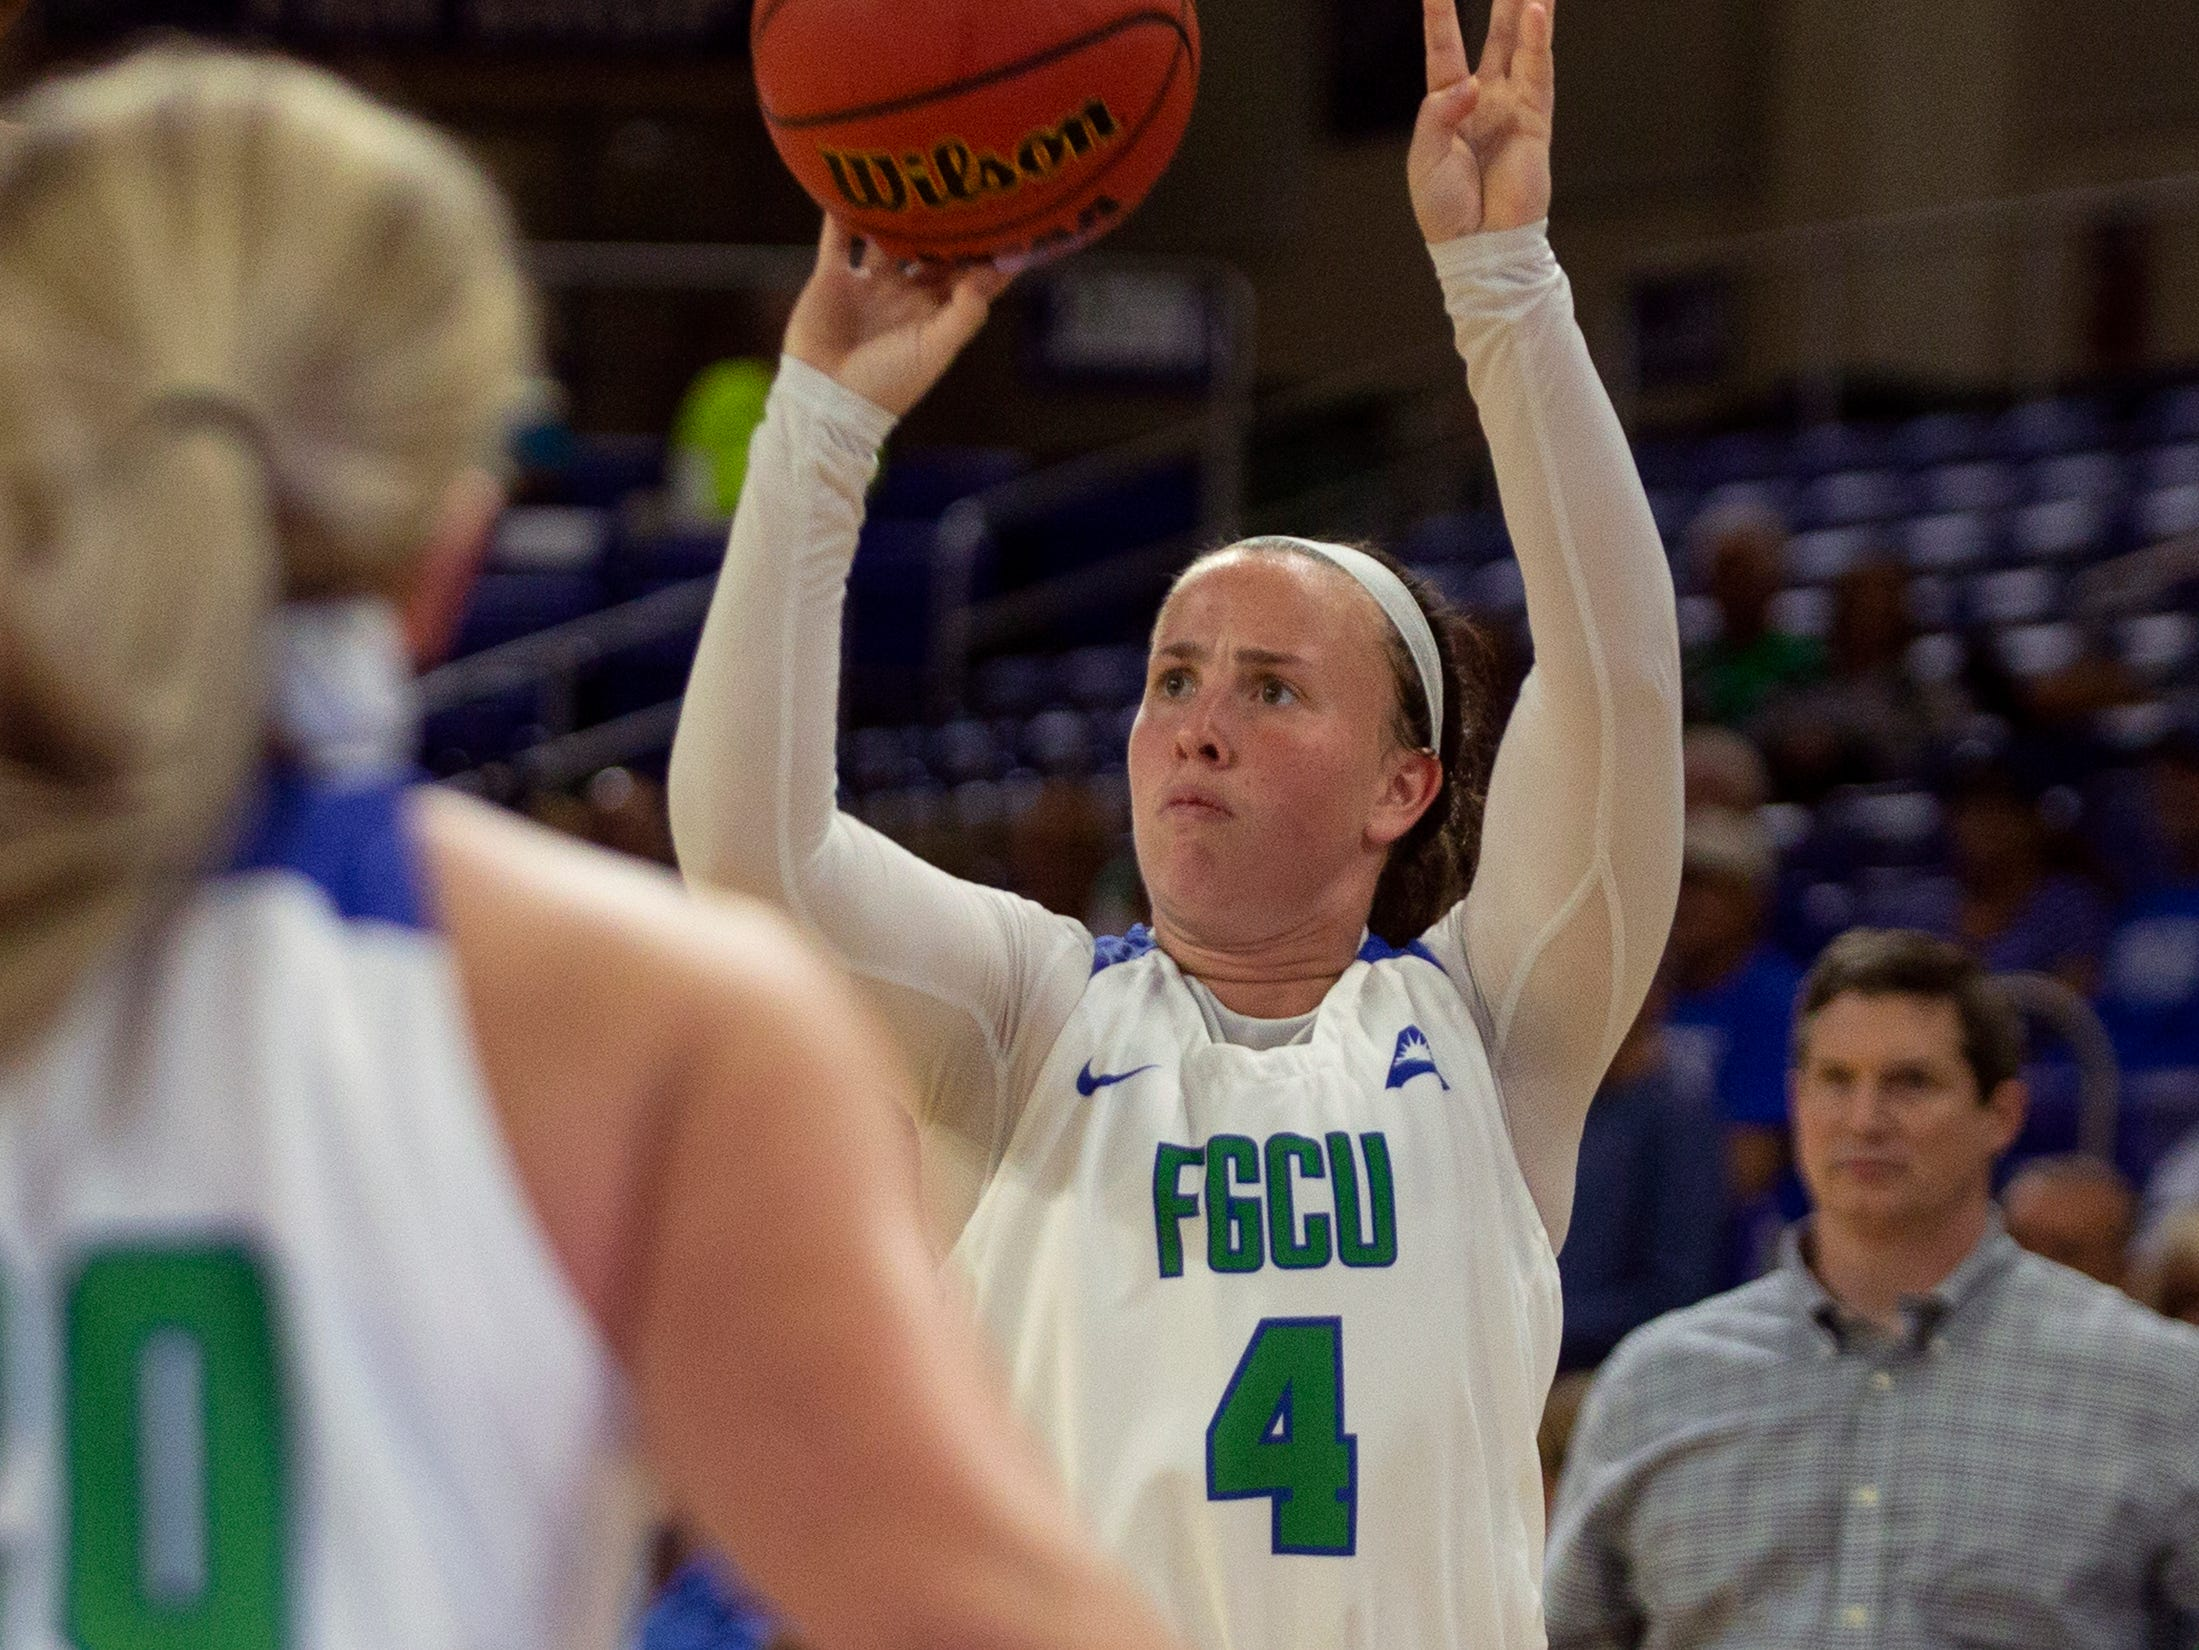 Florida Gulf Coast University's Chandler Ryan takes an open shot against Kennesaw State, Wednesday, March 13, 2019, at Florida Gulf Coast University's Alico Arena.